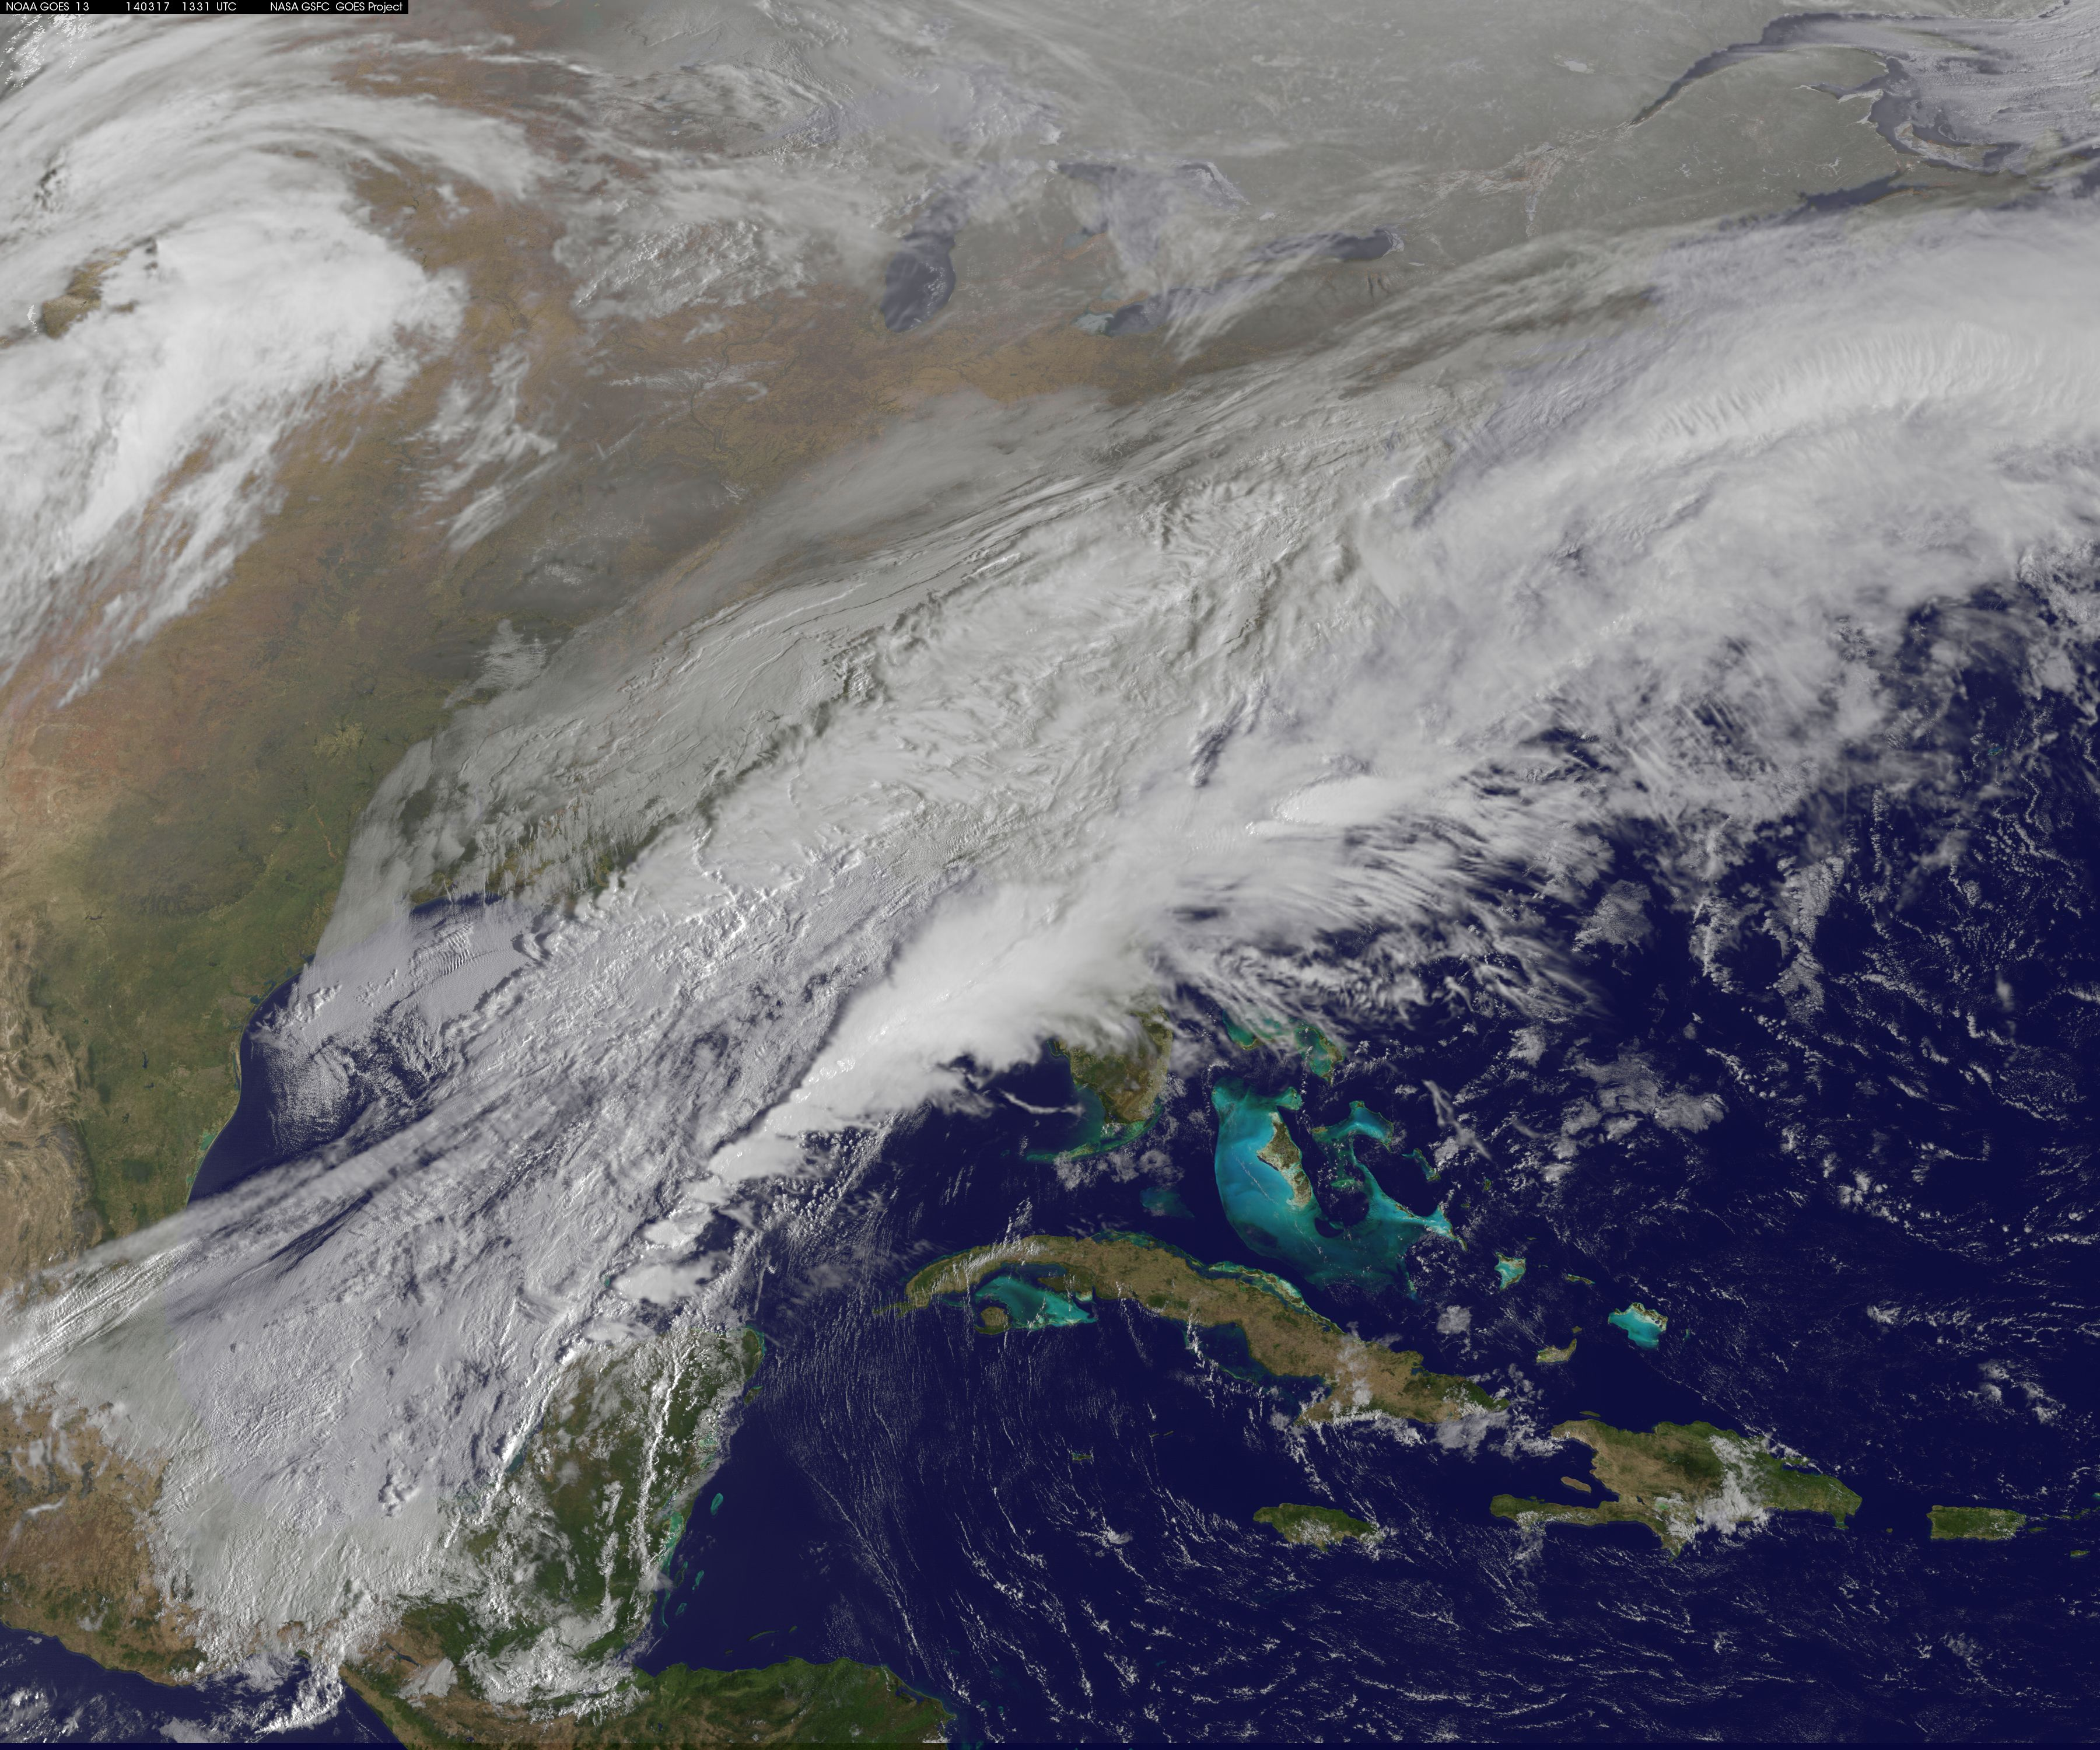 Mid-Atlantic on March 16 and 17. Credit: NASA/NOAA GOES Project